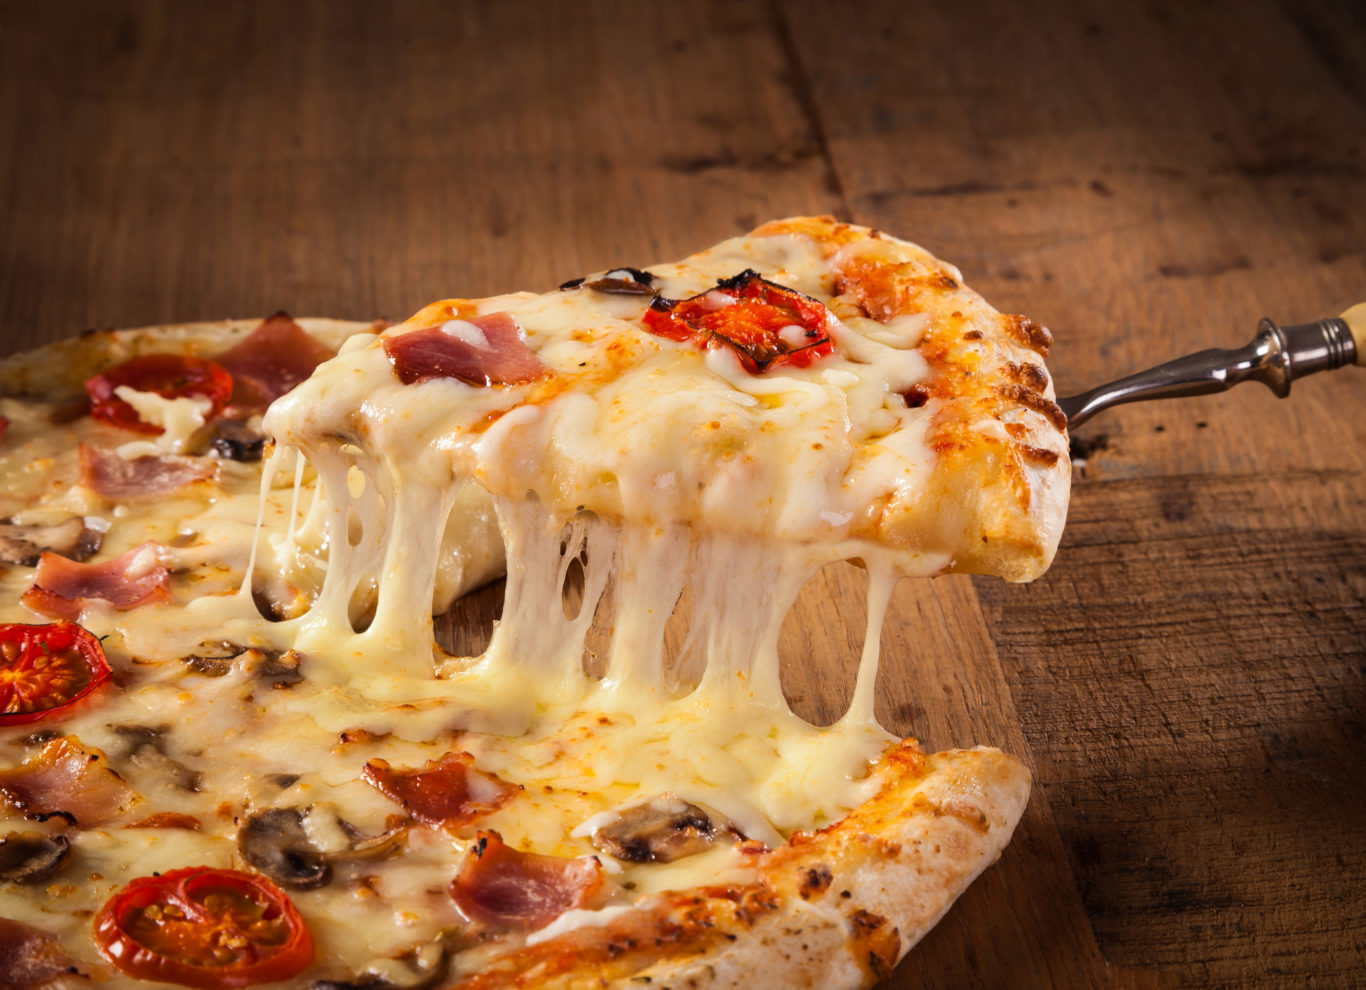 A slice of pizza is pulled from the whole